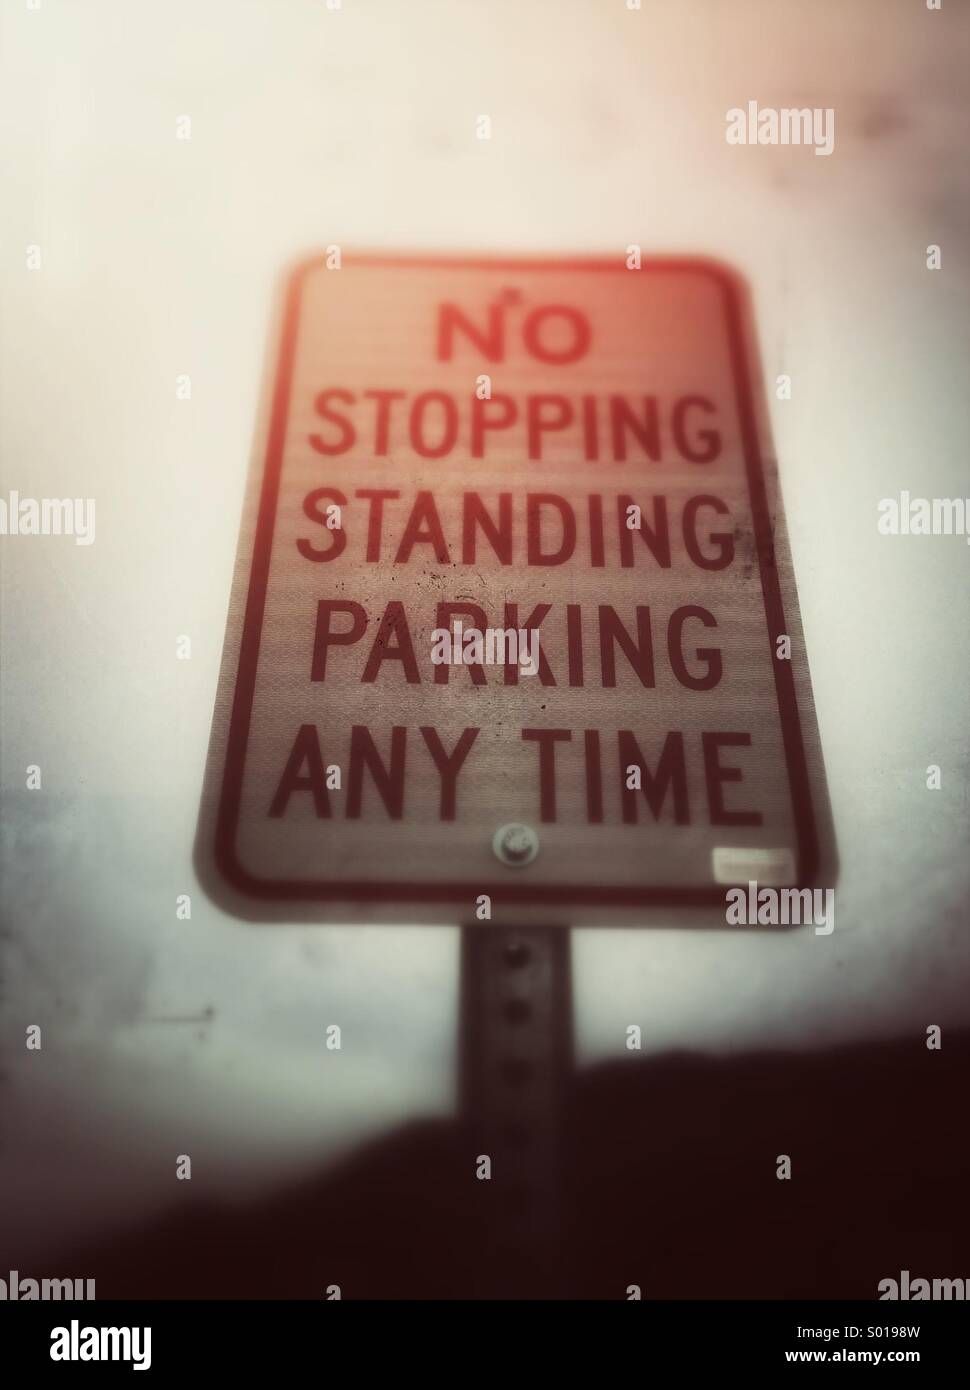 This Pretty Much Says It All >> This Sign Pretty Much Says It All Just Stay Away Road Sign In